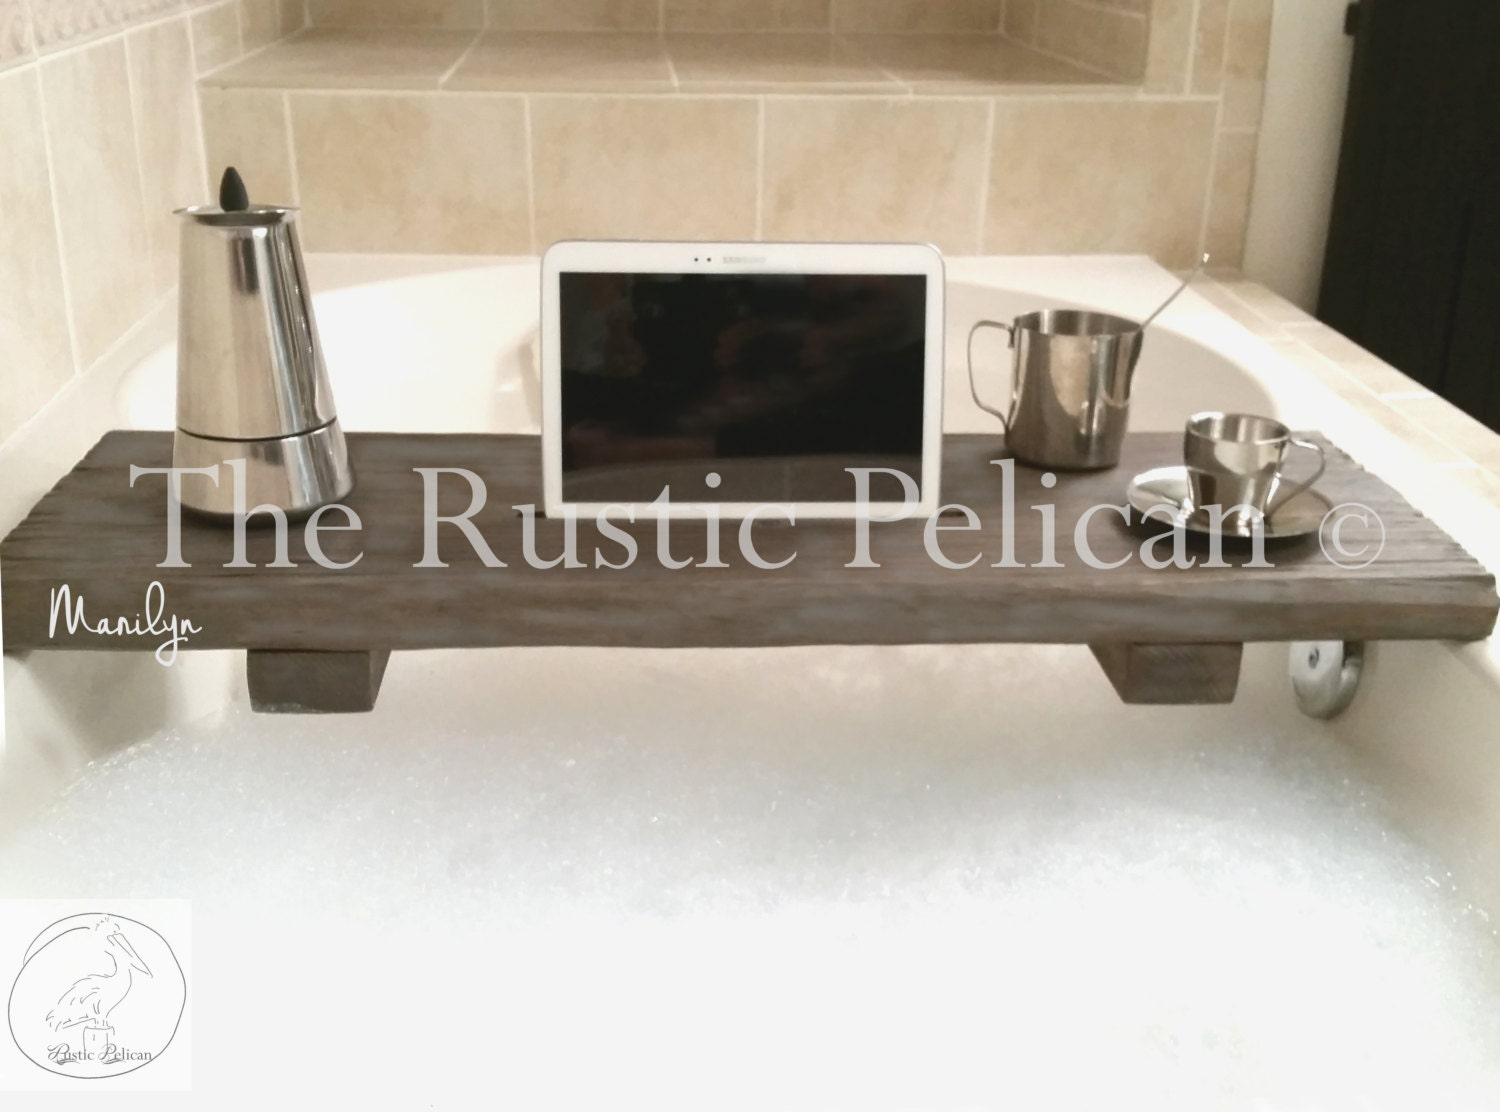 Rustic Bathtub Caddy-Wood Bathtub Tray Bath shelf